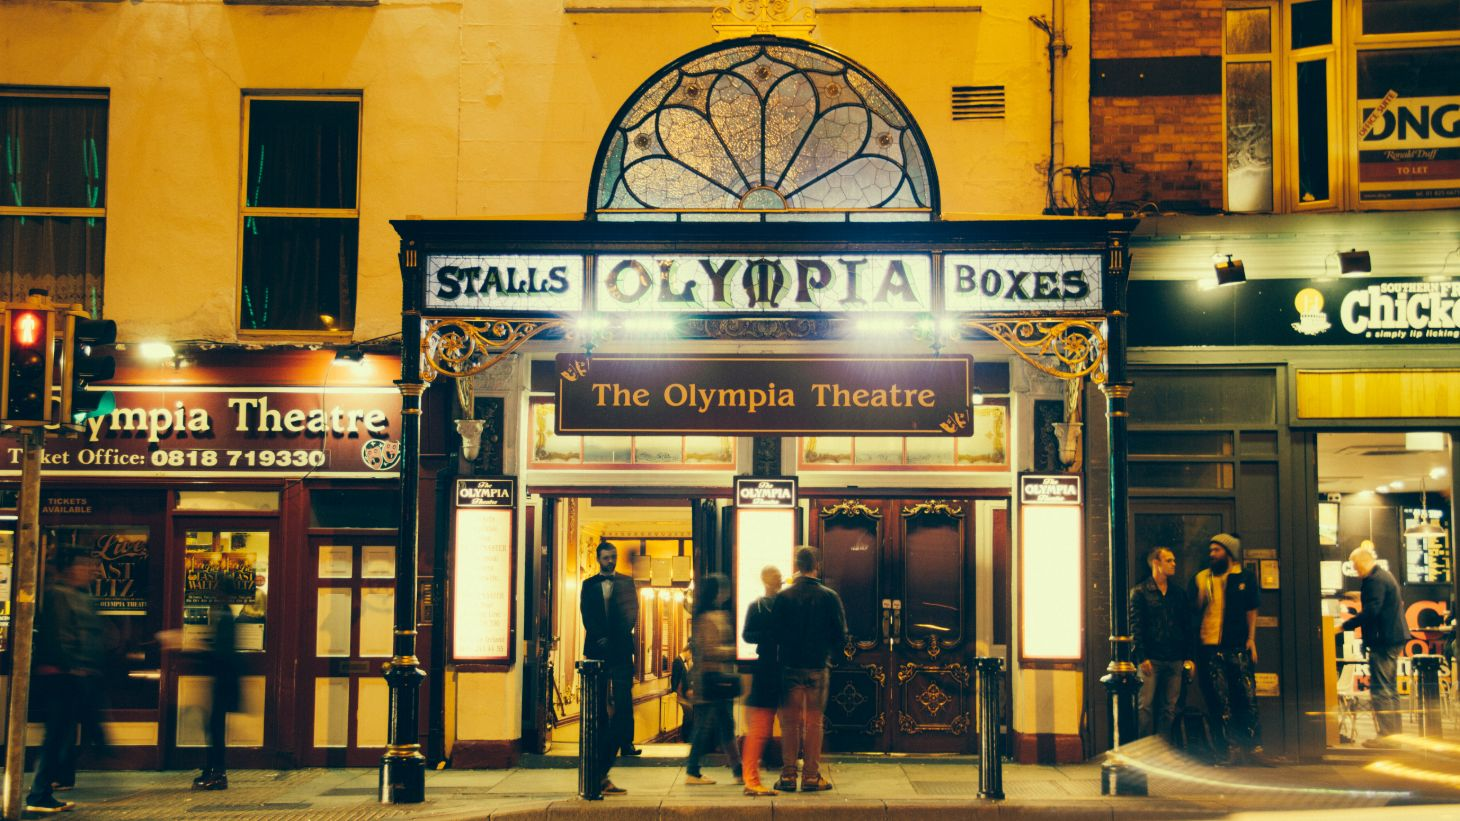 The Olympia Theatre is one of Dublin's oldest and most renowned theatres.